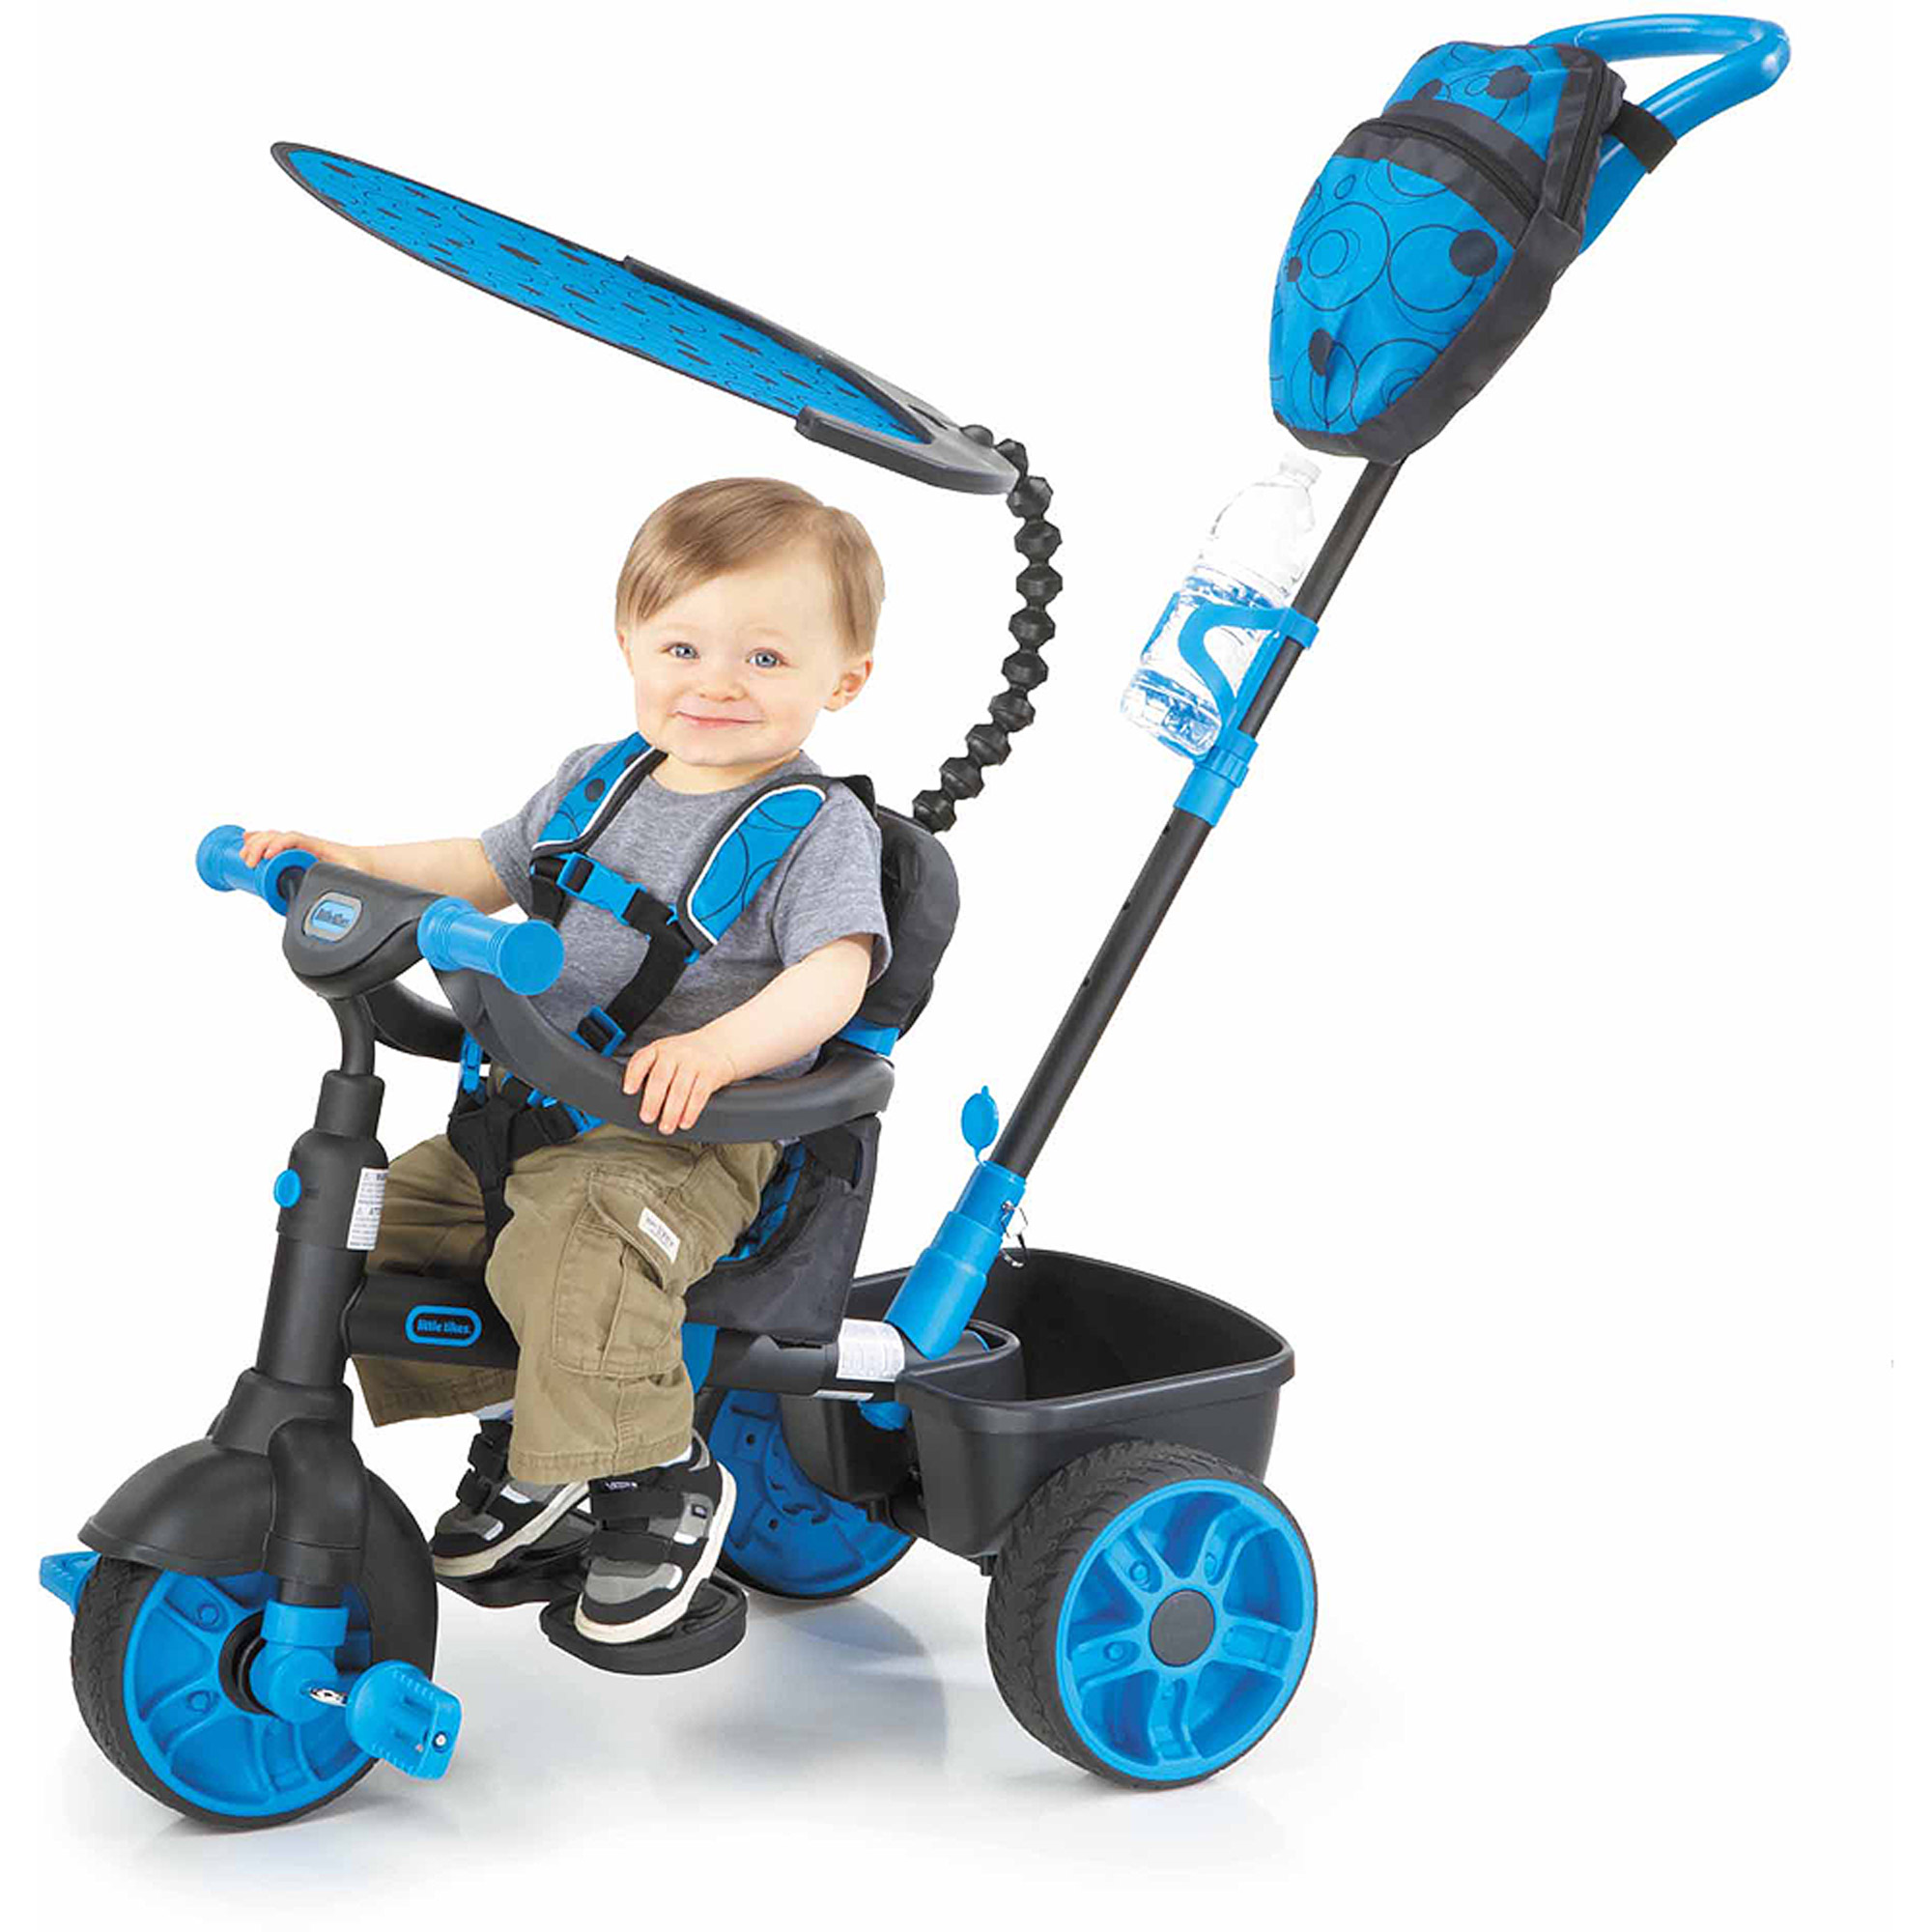 Little Tikes 4-in-1 Deluxe Edition Trike, Neon Blue by MGA Entertainment